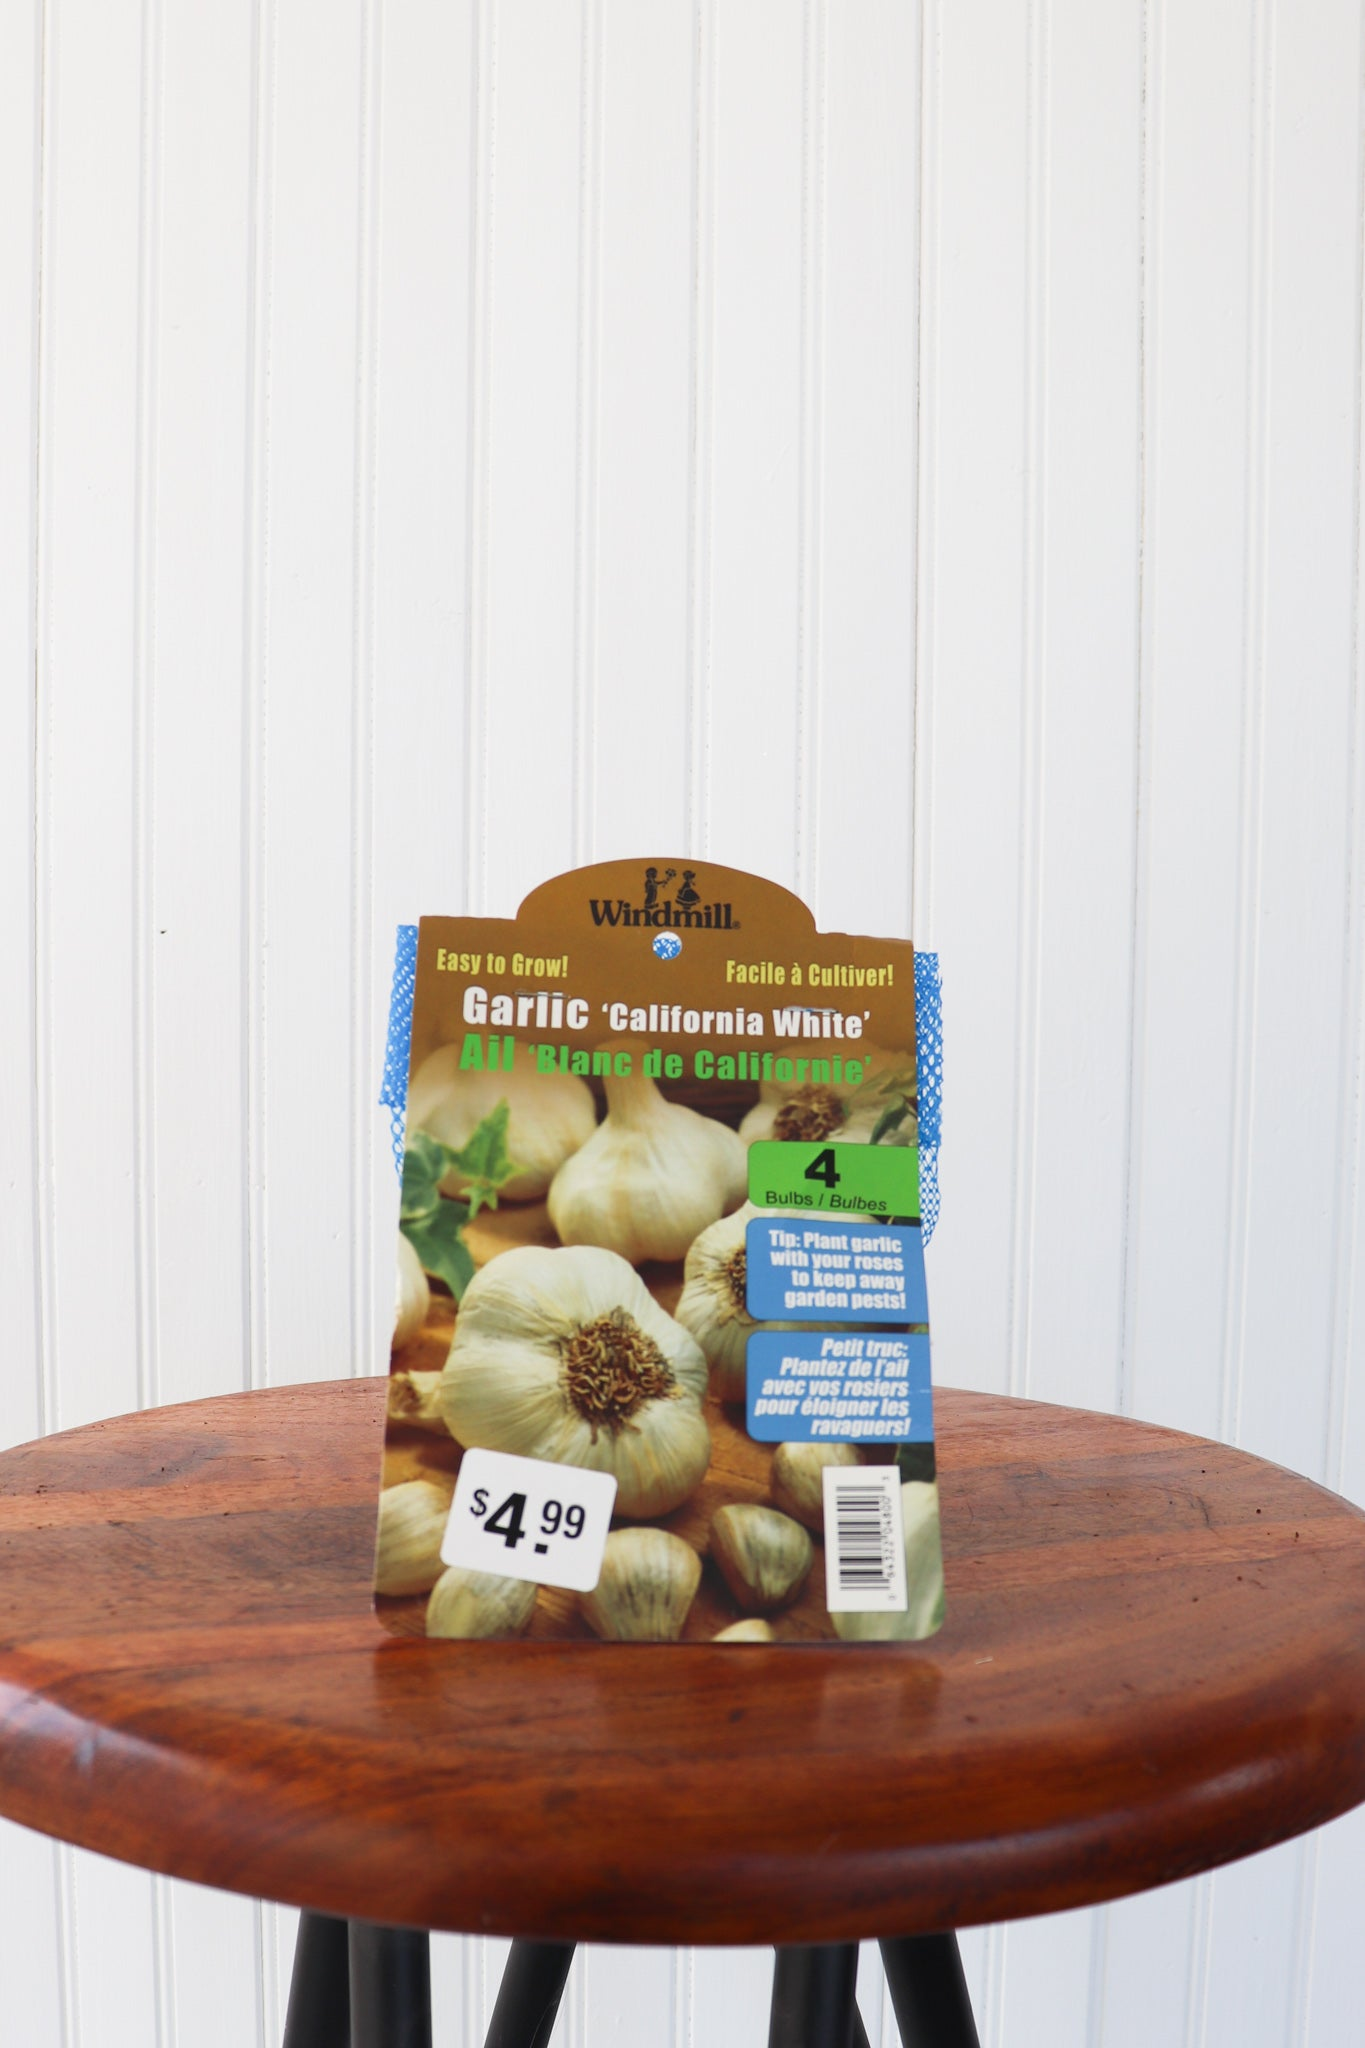 Garlic California White Bulbs - Seeds